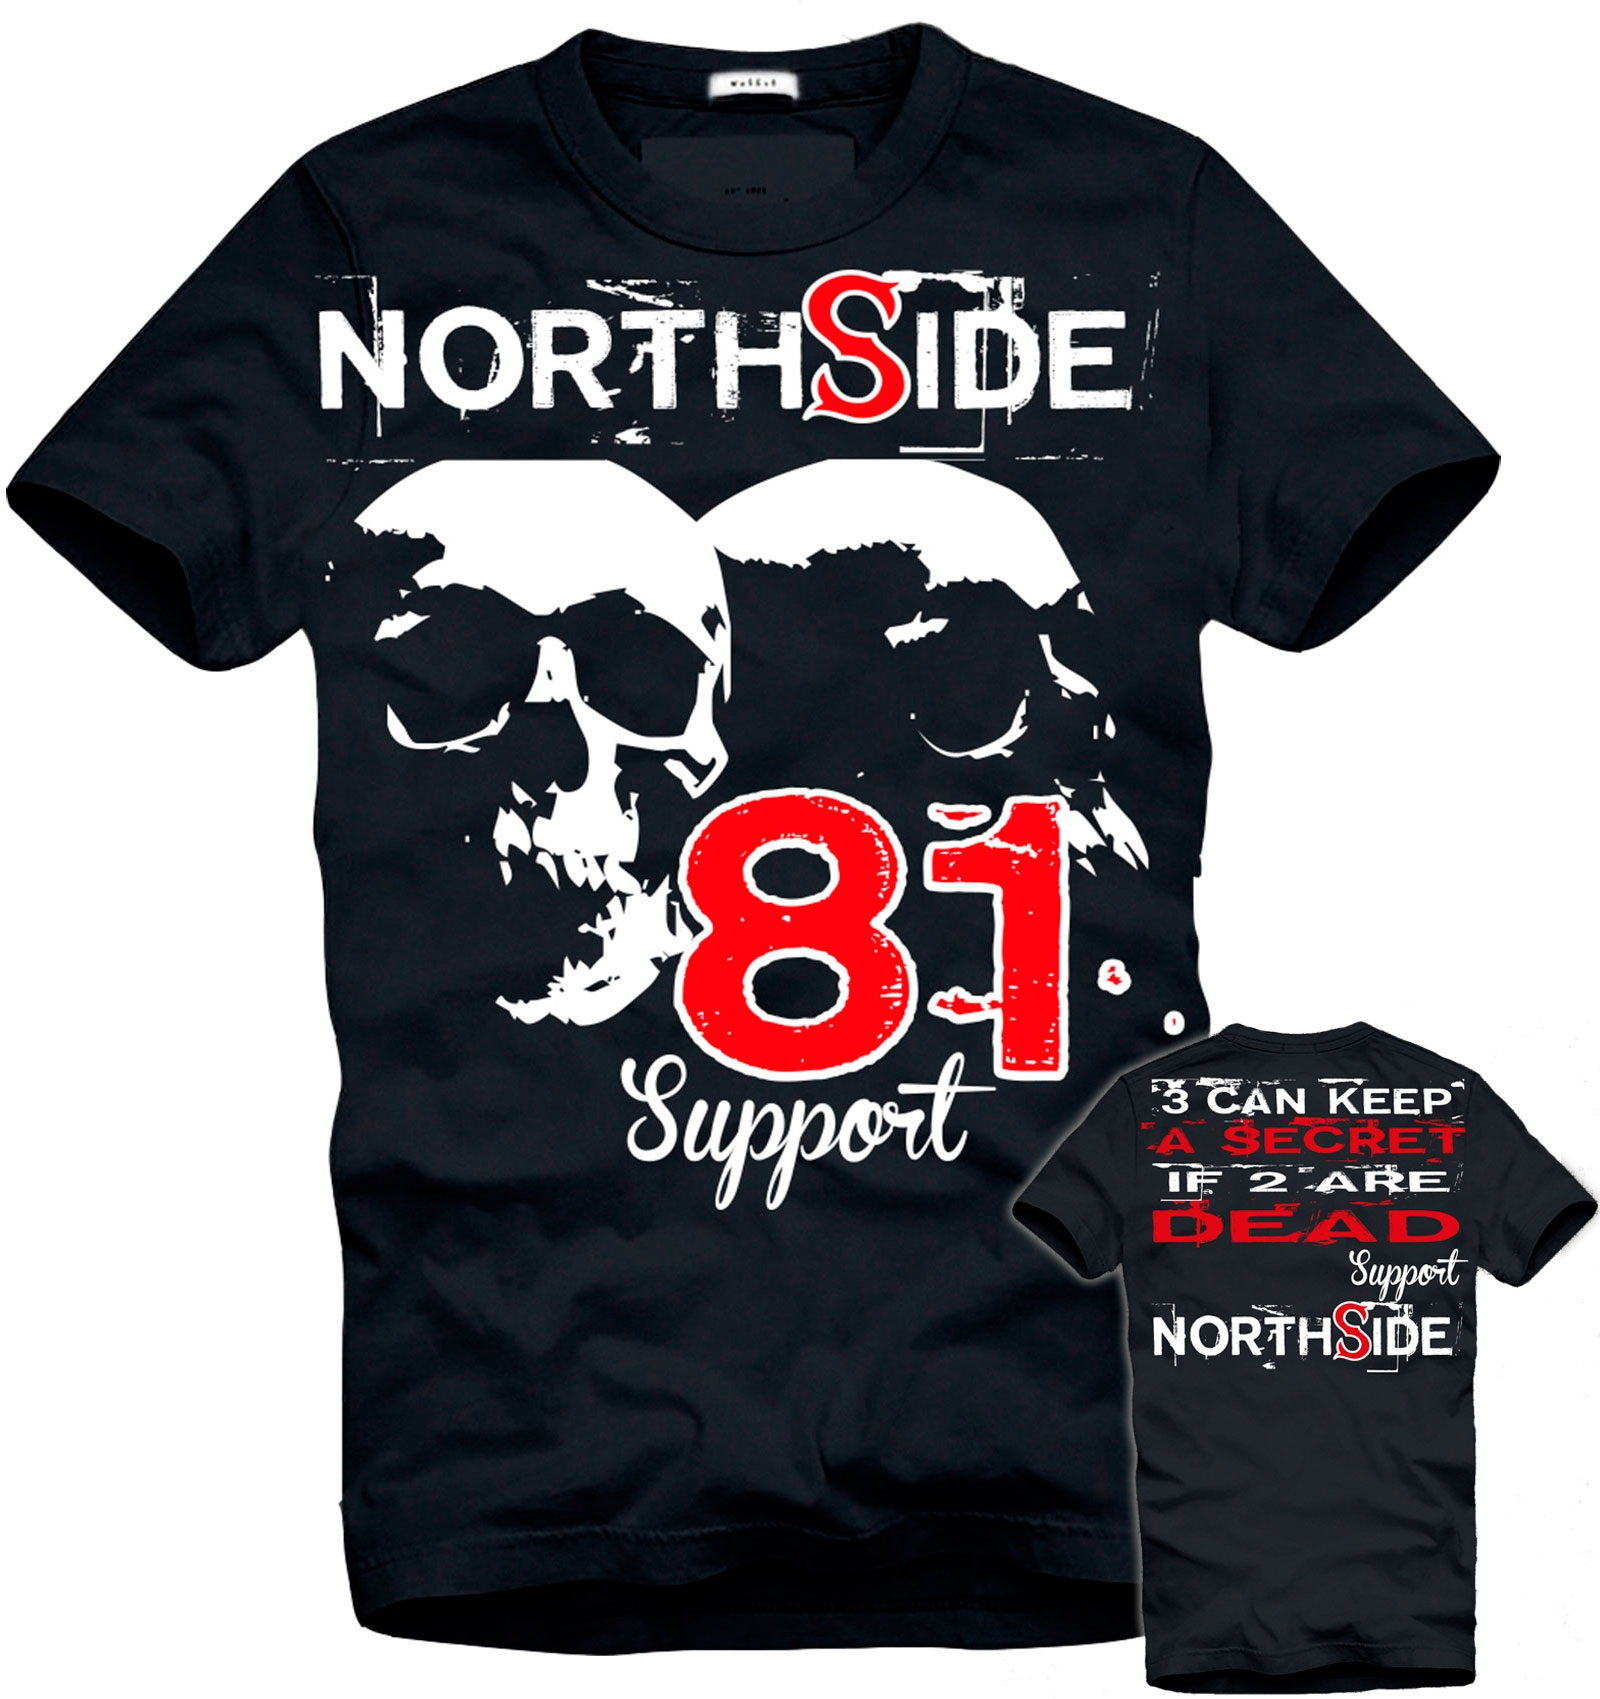 89 hells angels nomads support shirt motorcycle club for T shirt printing in colorado springs